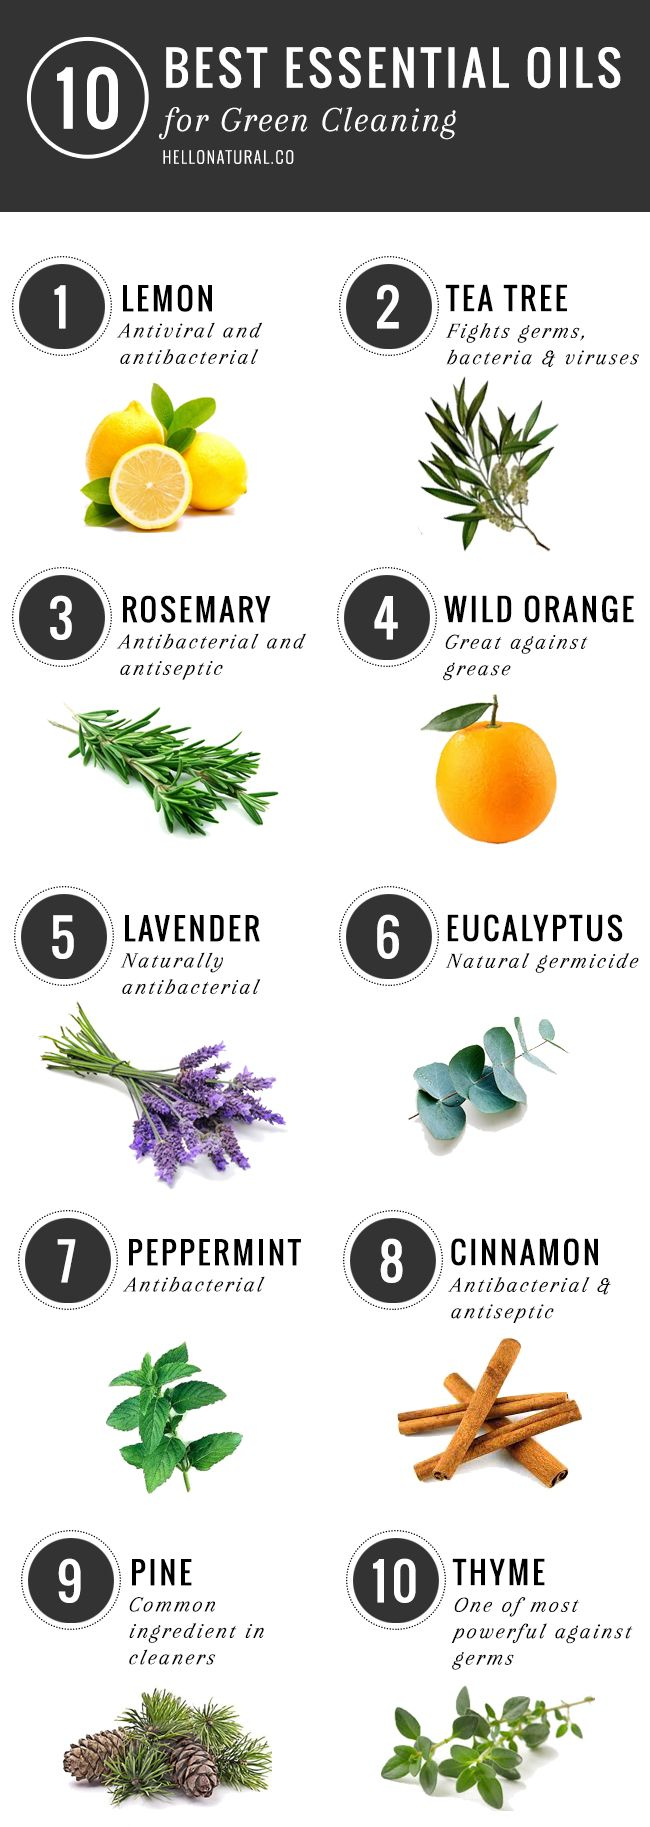 10 Best Essential Oils for Green Cleaning | http://helloglow.co/10-best-essential-oils-for-green-cleaning/